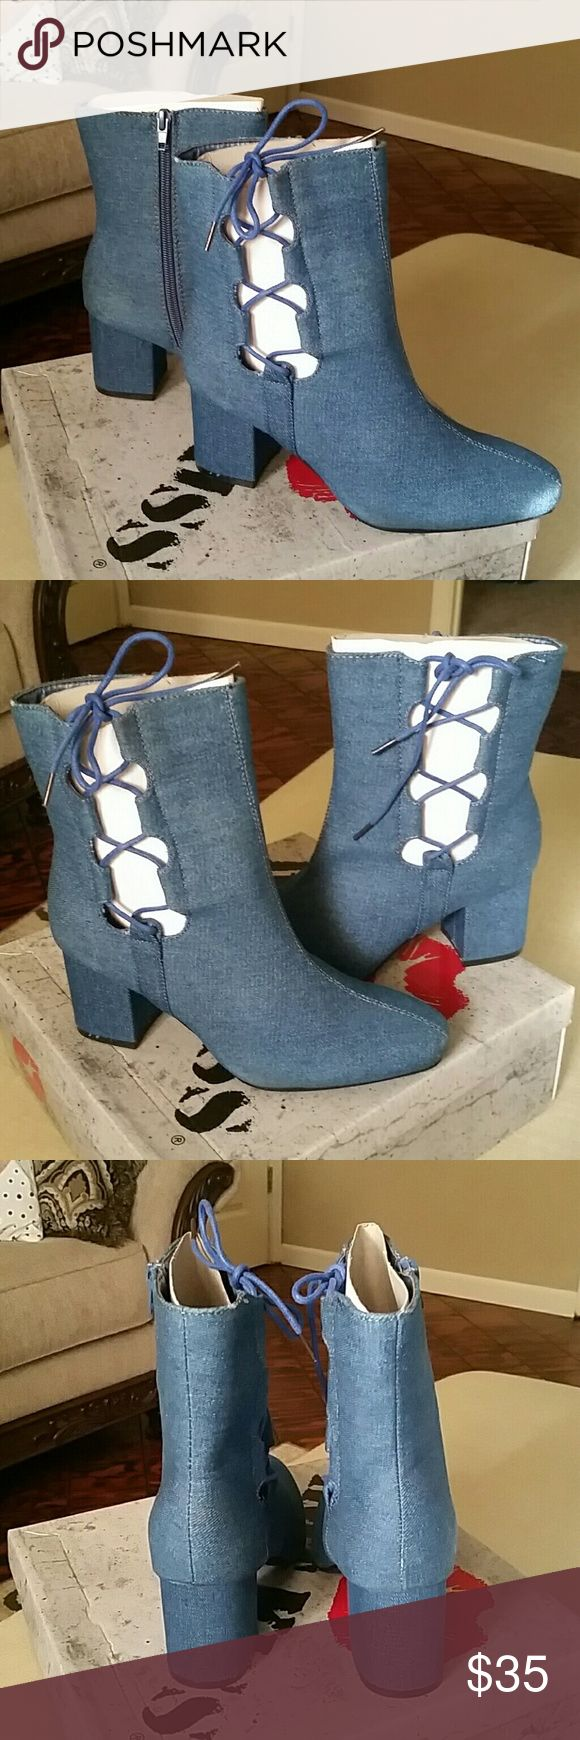 FLASH SALE💥Hot Kiss Gila Denim Boots Brand new in box Size 8 Denim Boots Hot Kiss Shoes Ankle Boots & Booties